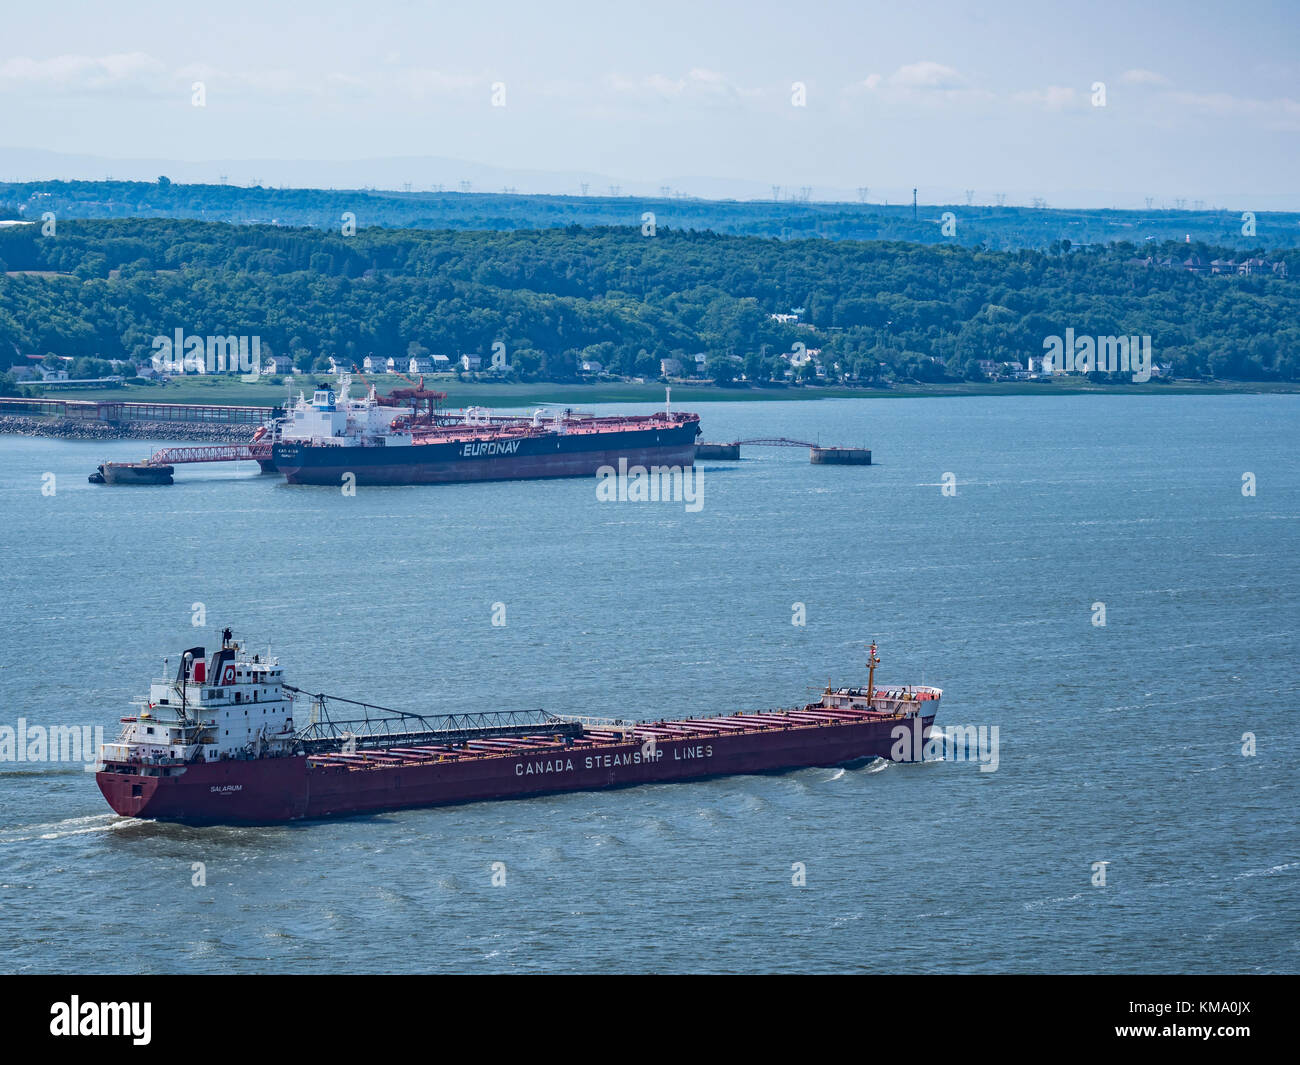 Cargo ship on the Saint Lawrence River, Quebec City, Canada. - Stock Image